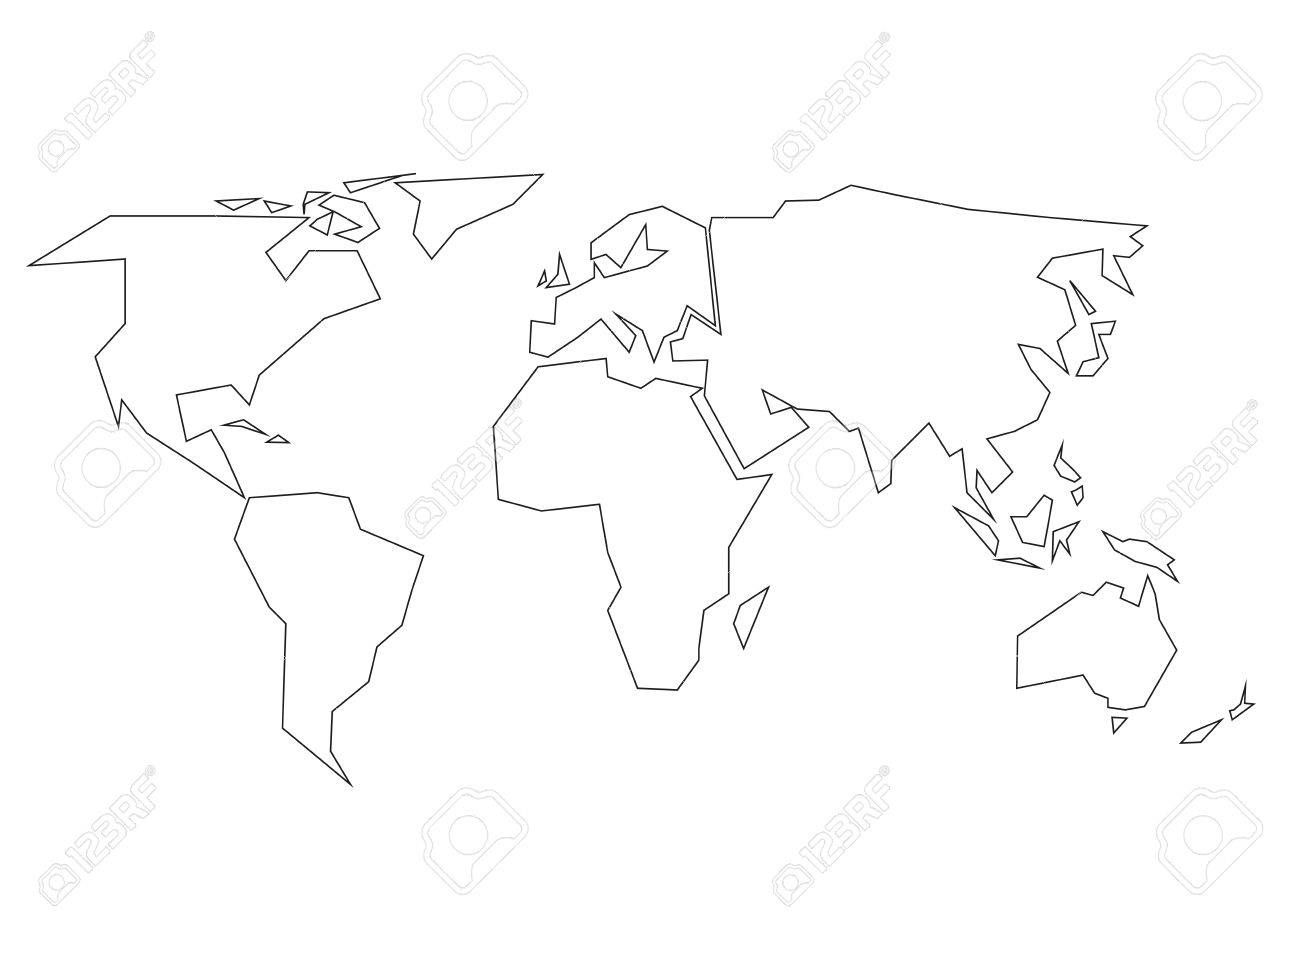 92 world map black and white simple simple world map with cou simplified black outline of world map divided to six continents simple flat vector illustration on gumiabroncs Choice Image